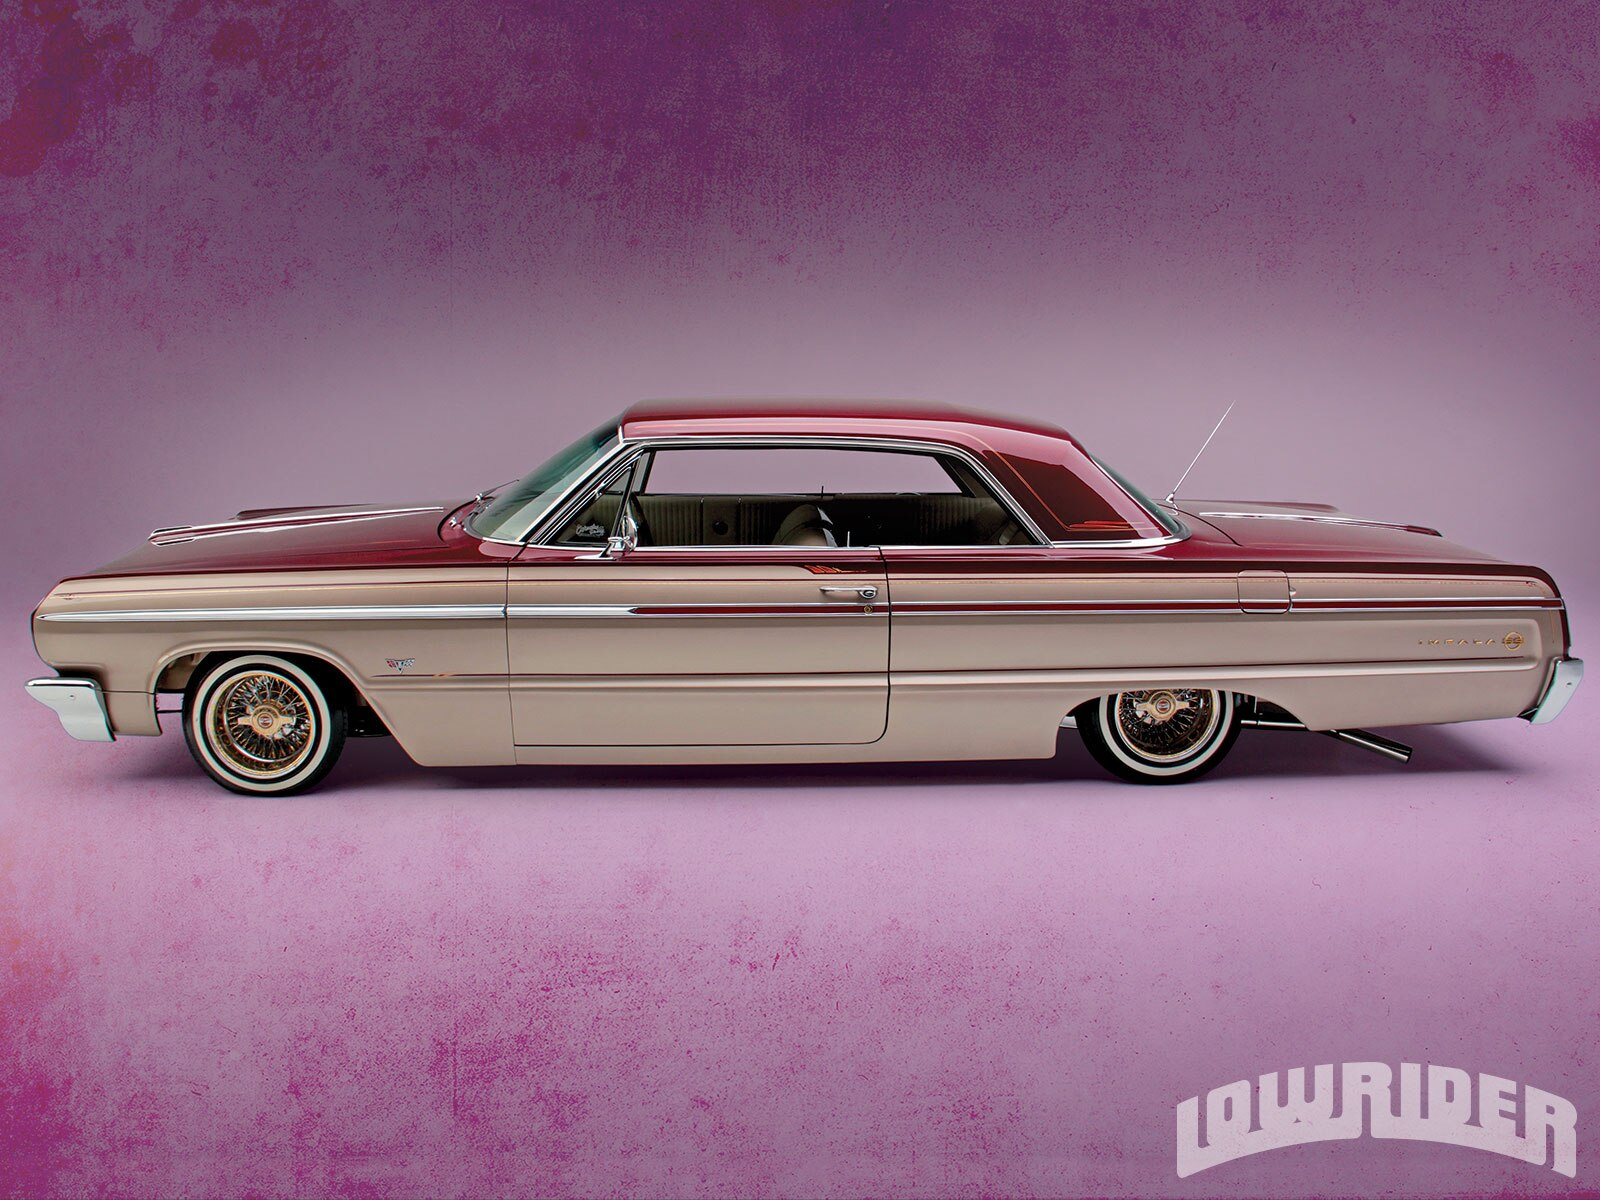 1302-lrmp-12-o-1964-chevrolet-impala-side-view2